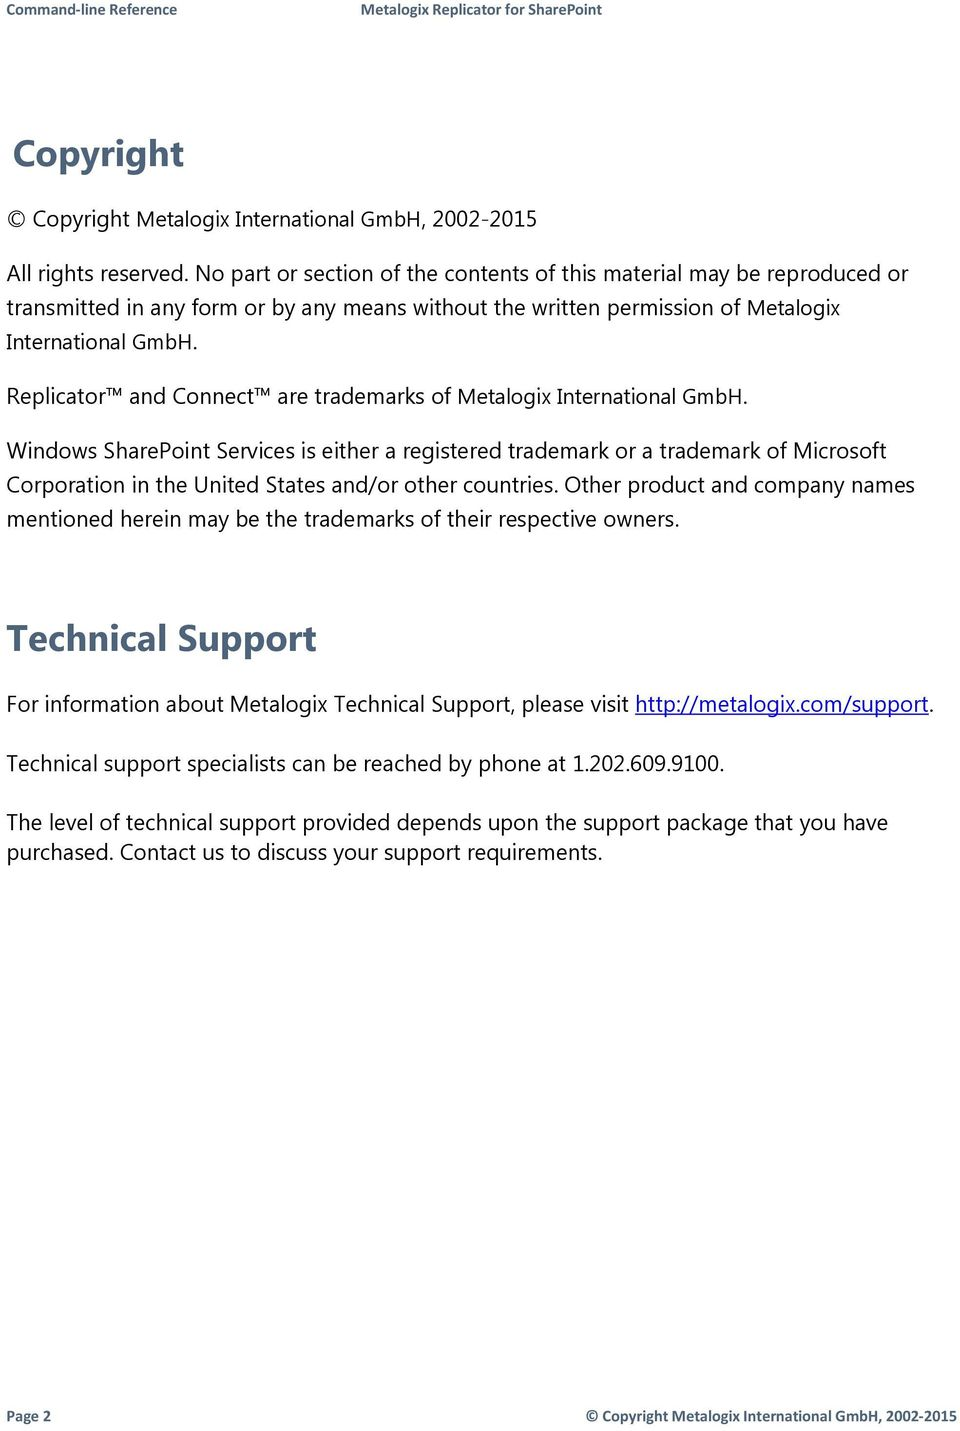 Replicator and Connect are trademarks of Metalogix International GmbH.